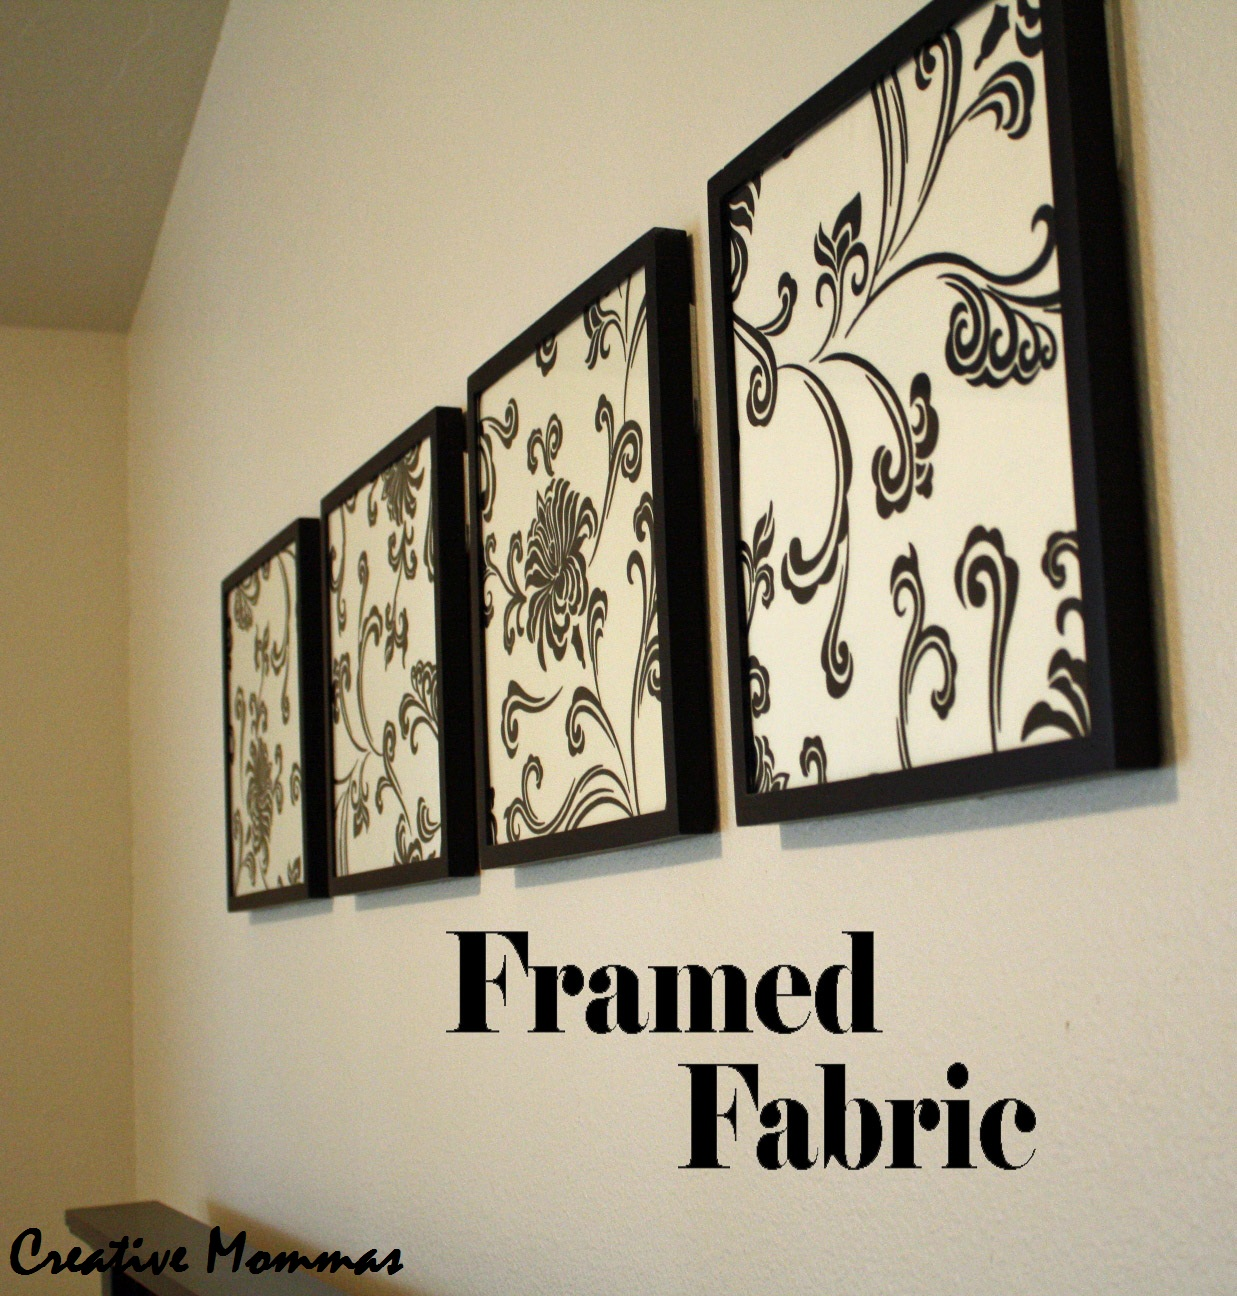 Photo Frames For Wall Decor : Creative mommas framed fabric wall decor